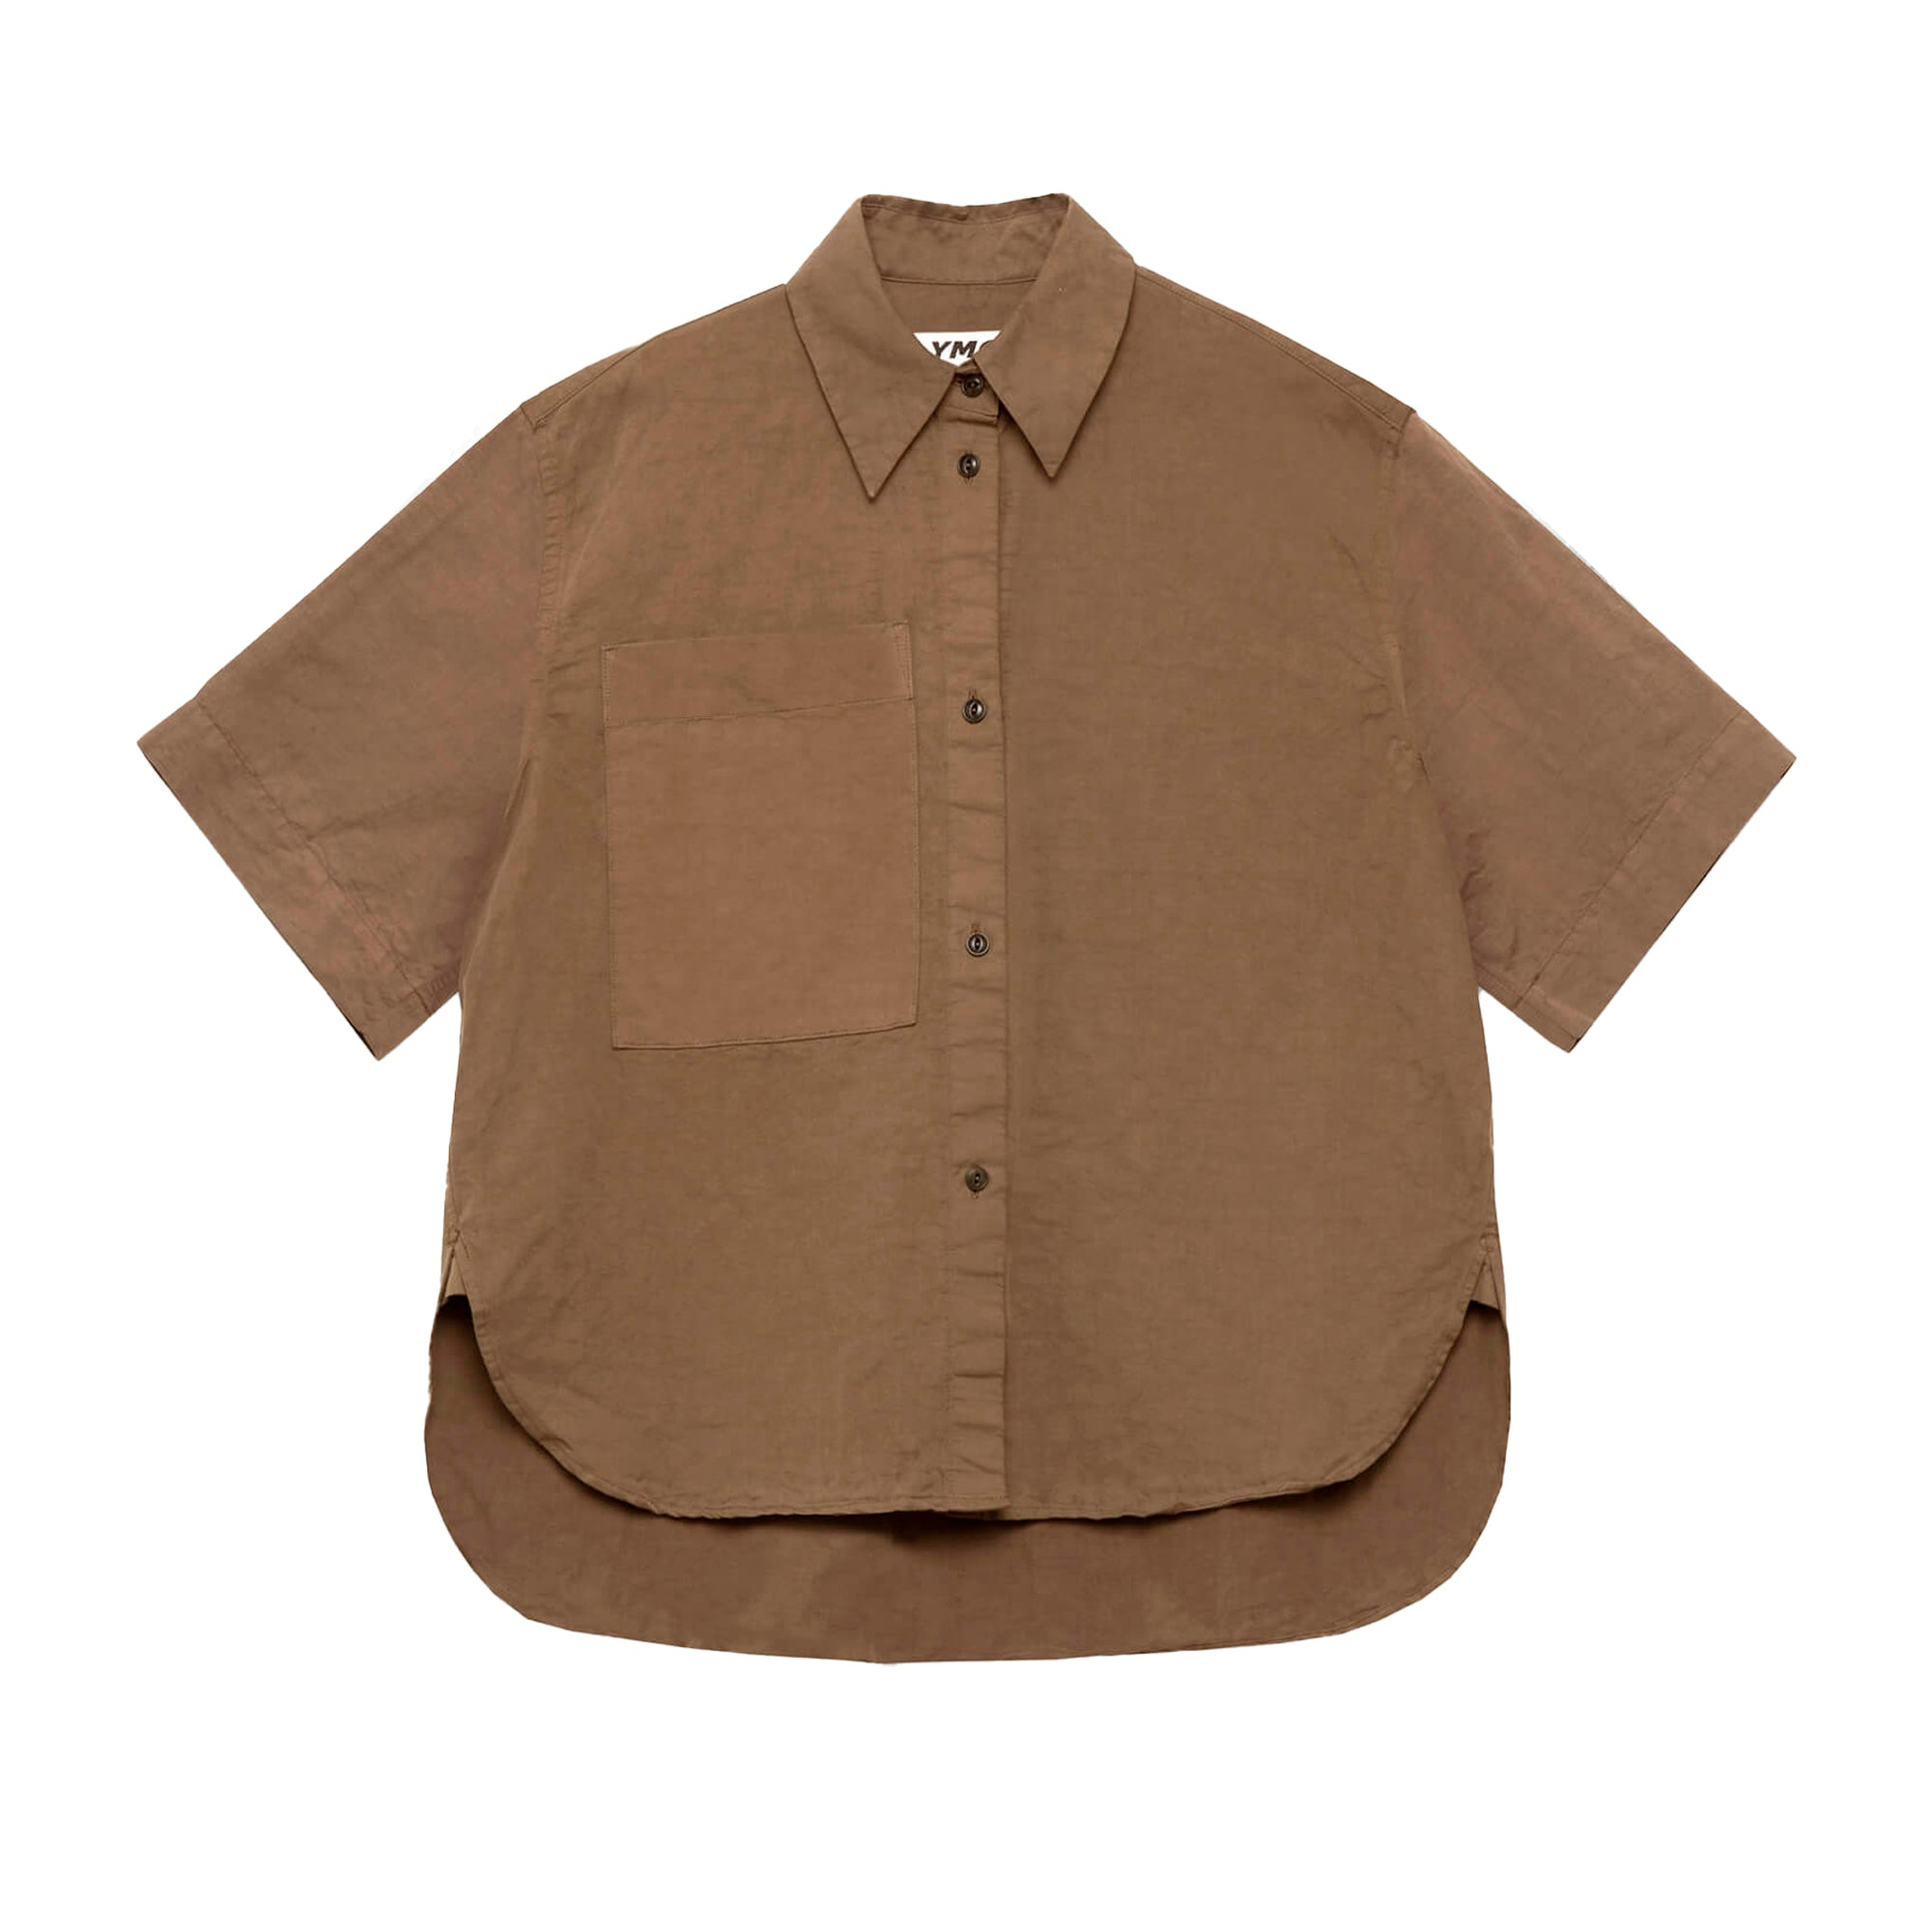 YMC Womens Eva Shirt: Olive - The Union Project